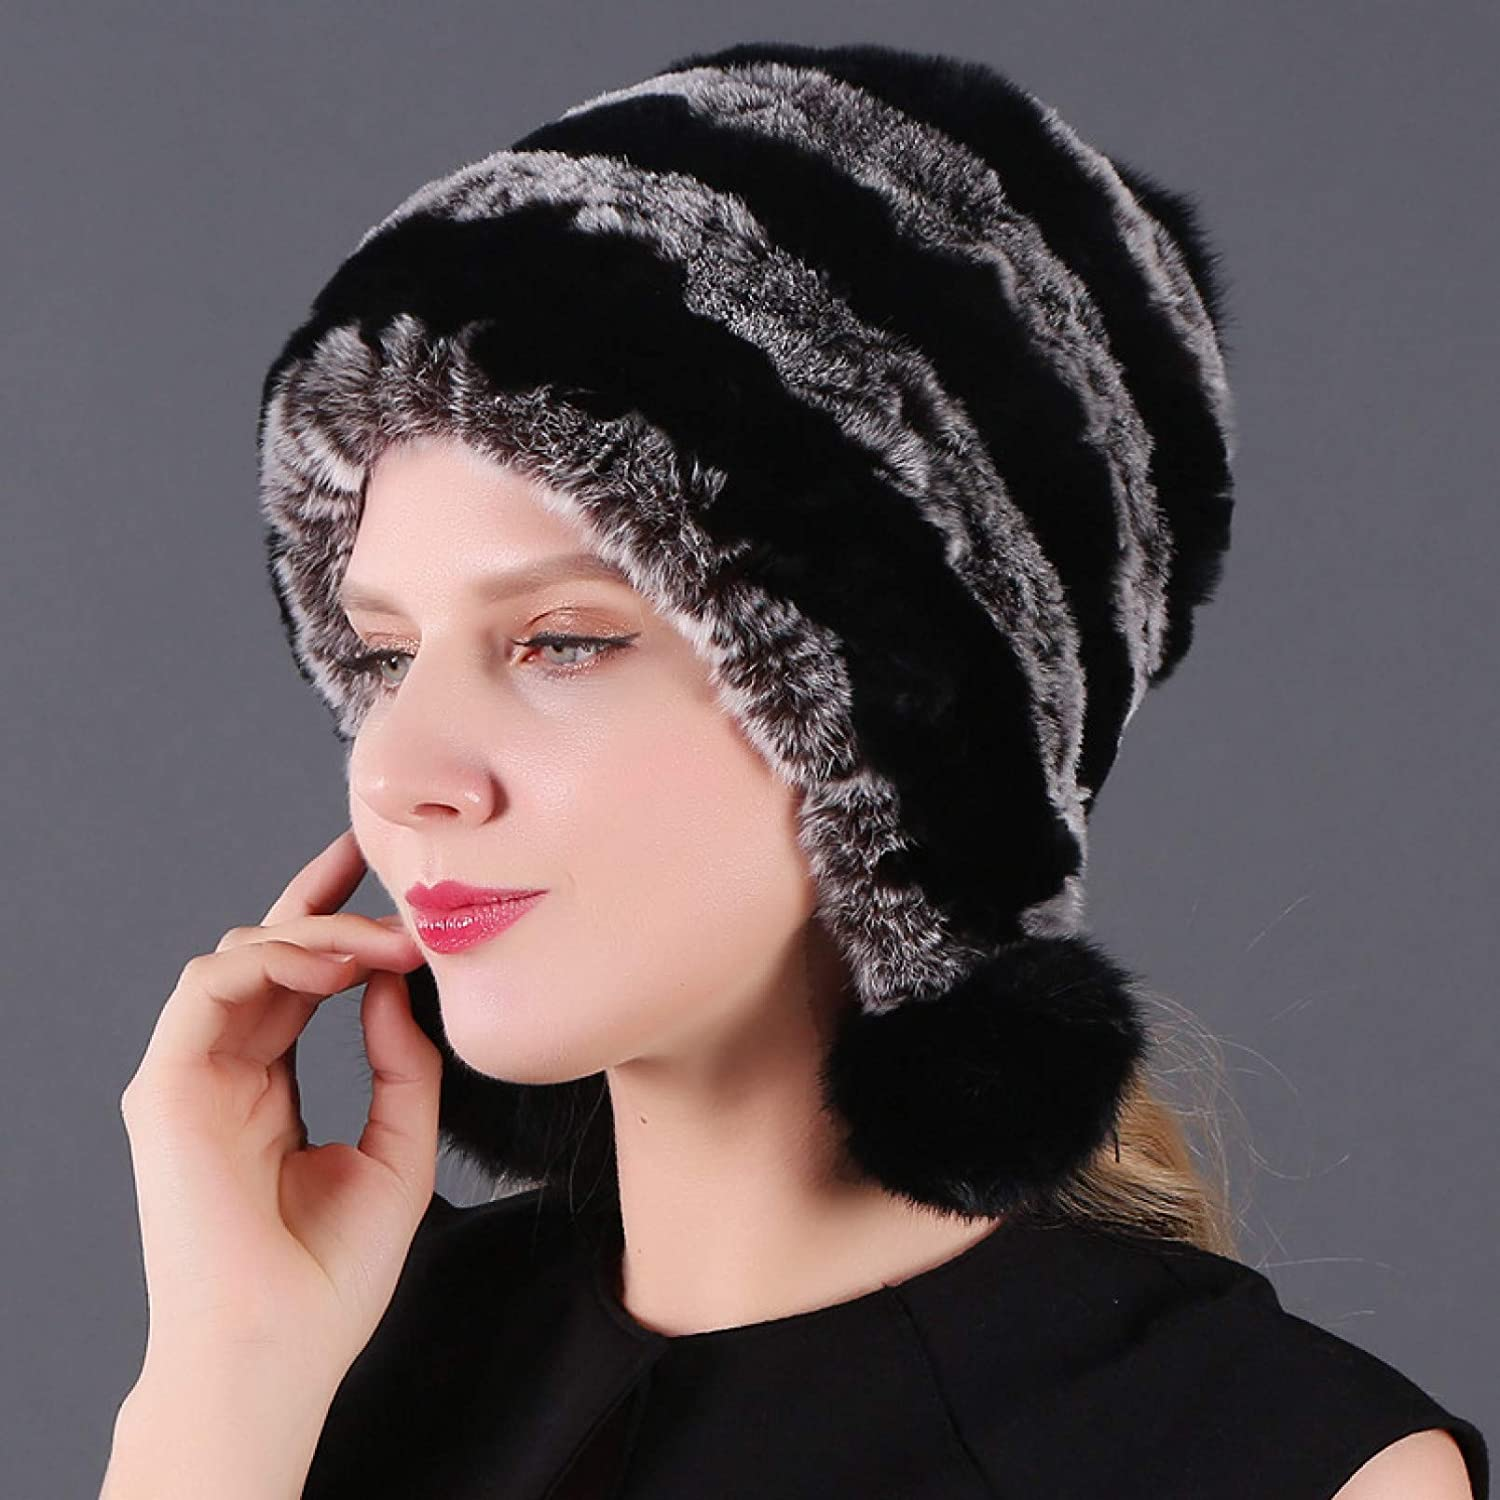 BELEMON Some reservation Winter Hats Super Special SALE held for Women Thick Warm Lad Fur Real Rabbit Hat